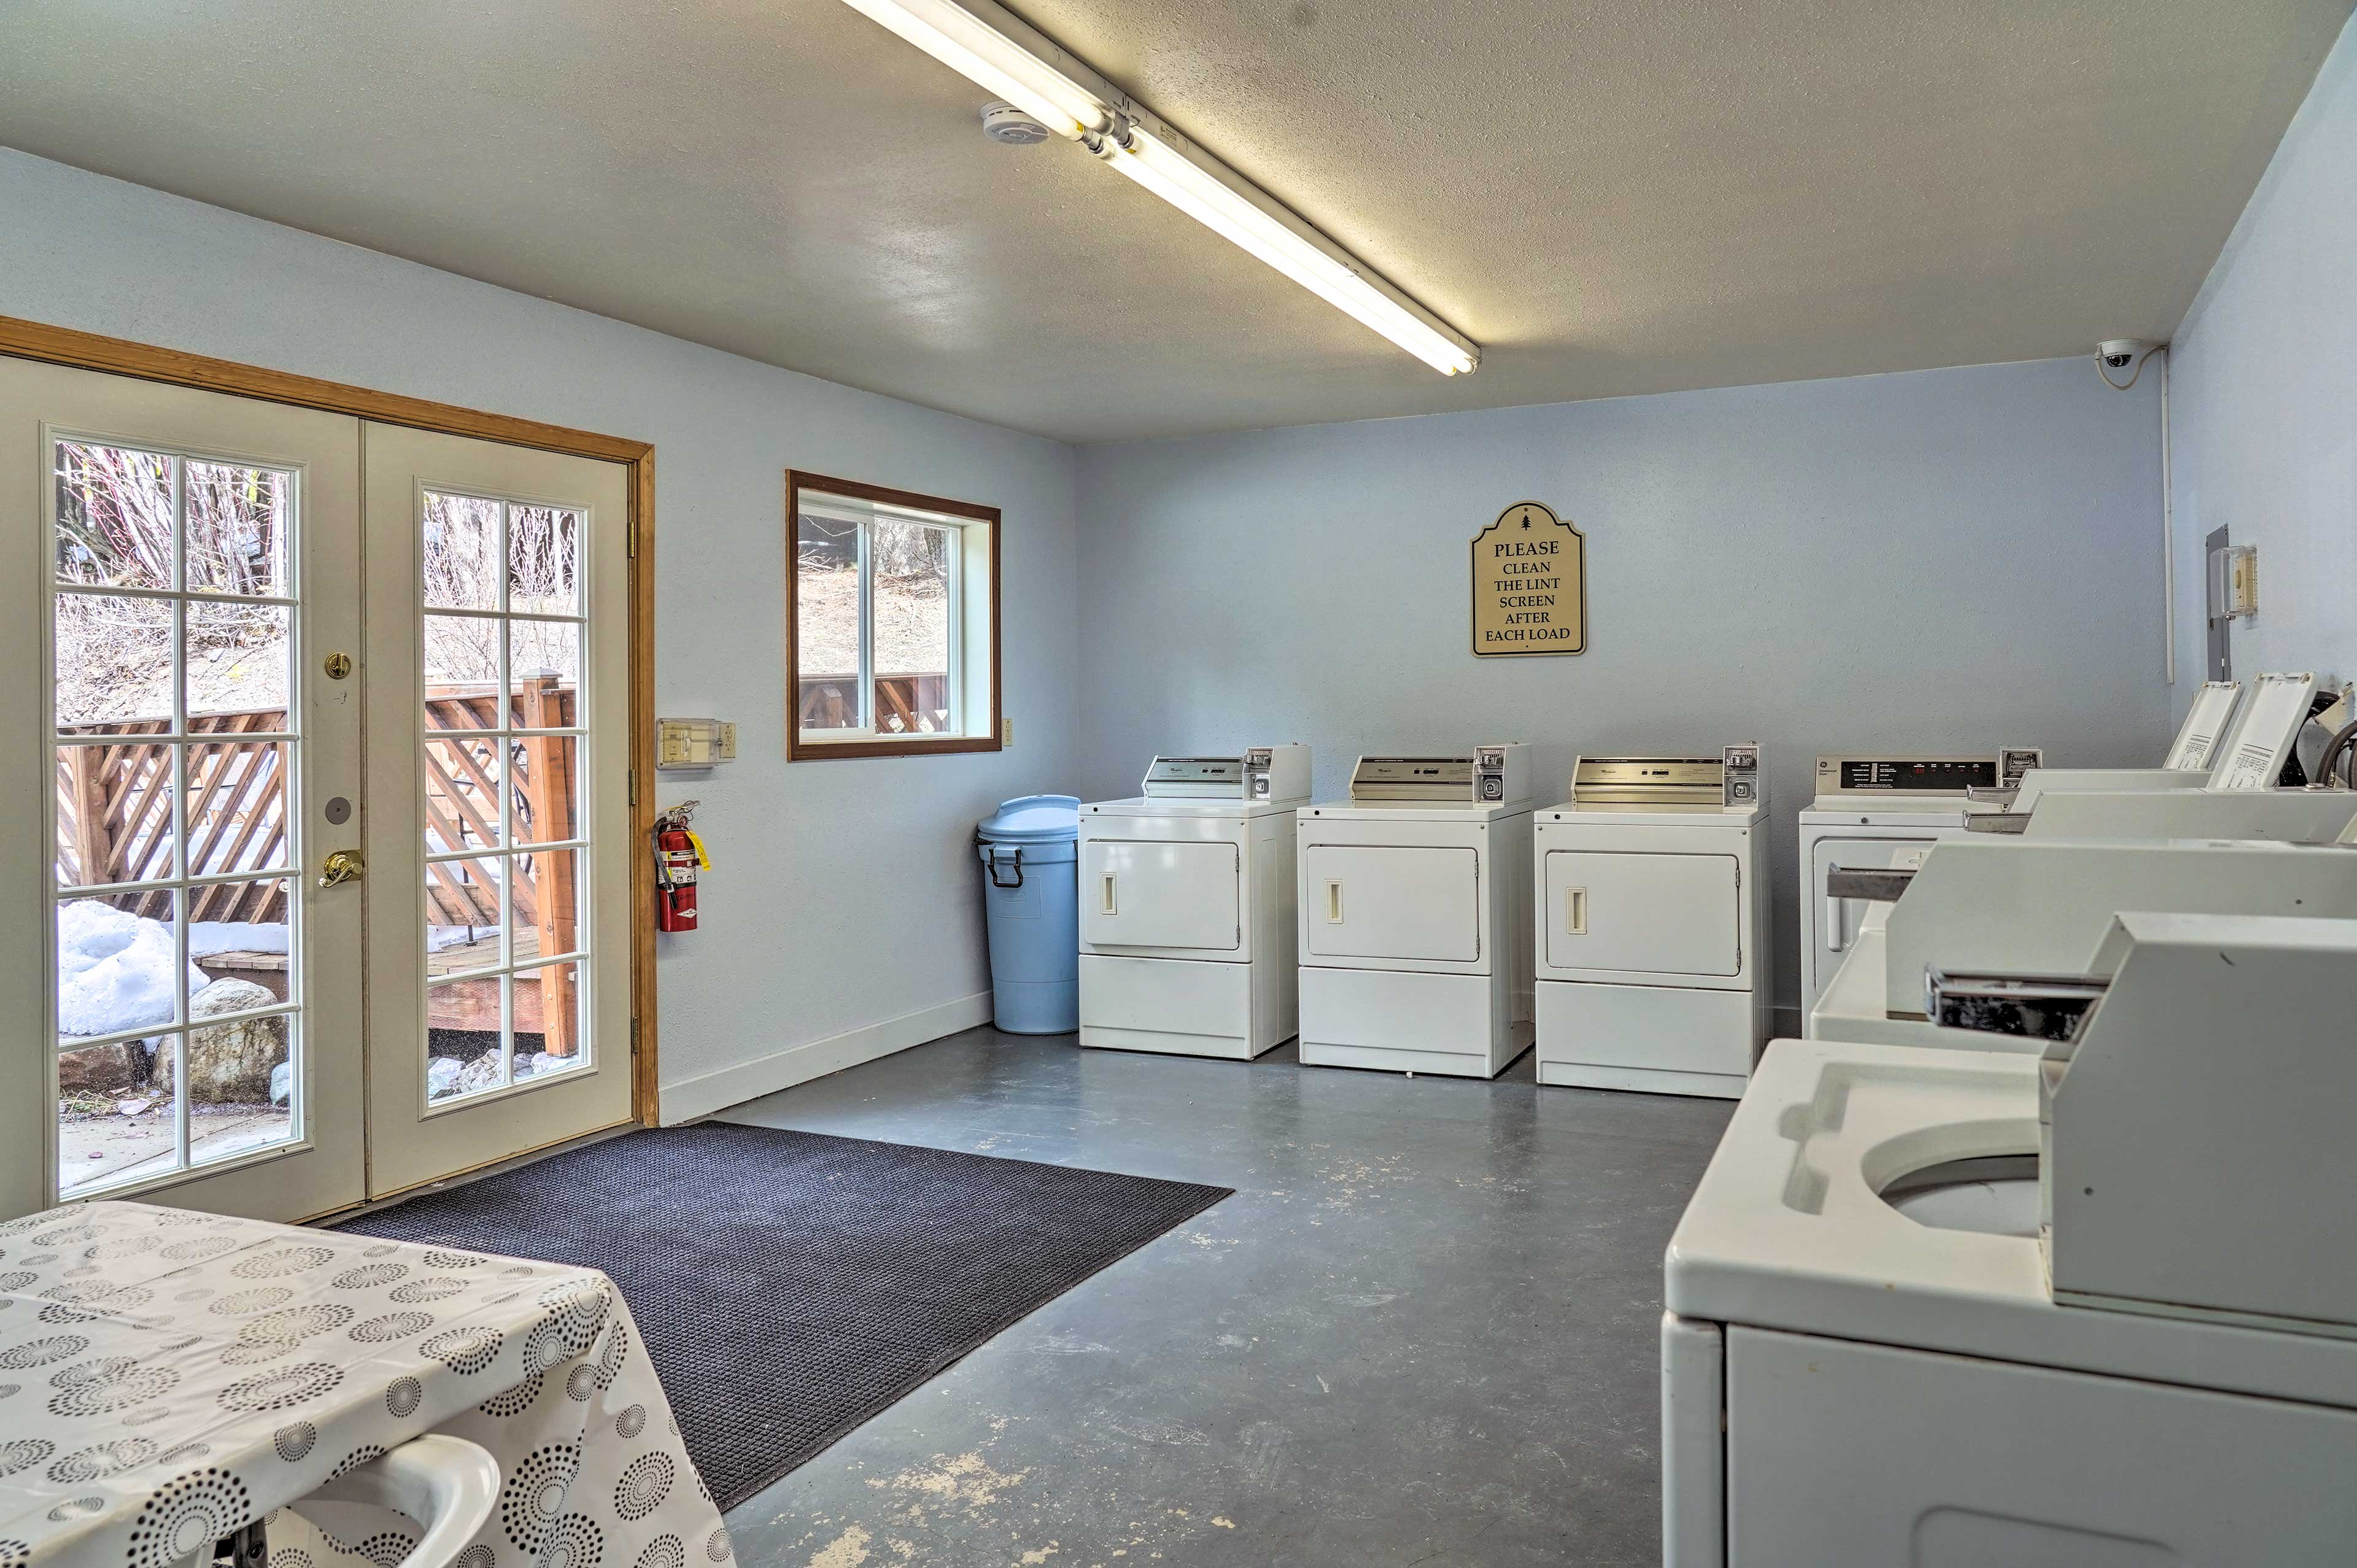 Keep your adventure gear sparkling with the on-site laundromat.